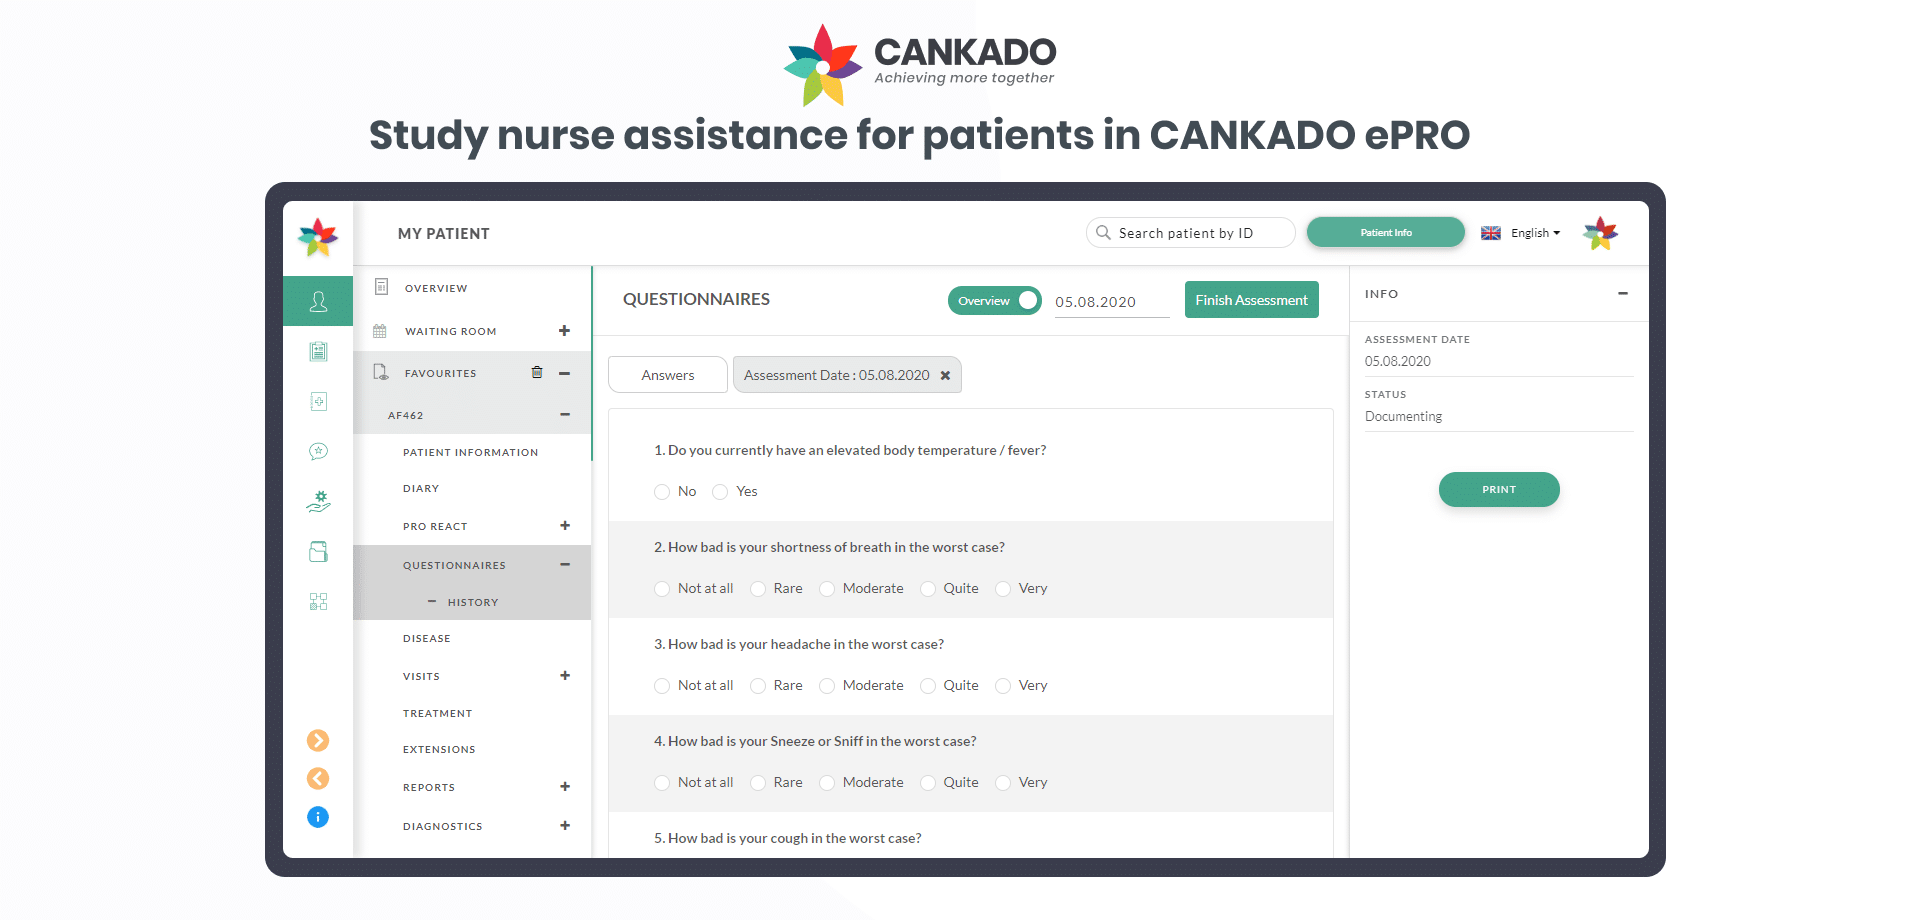 Study nurse assistance for patients in CANKADO ePRO